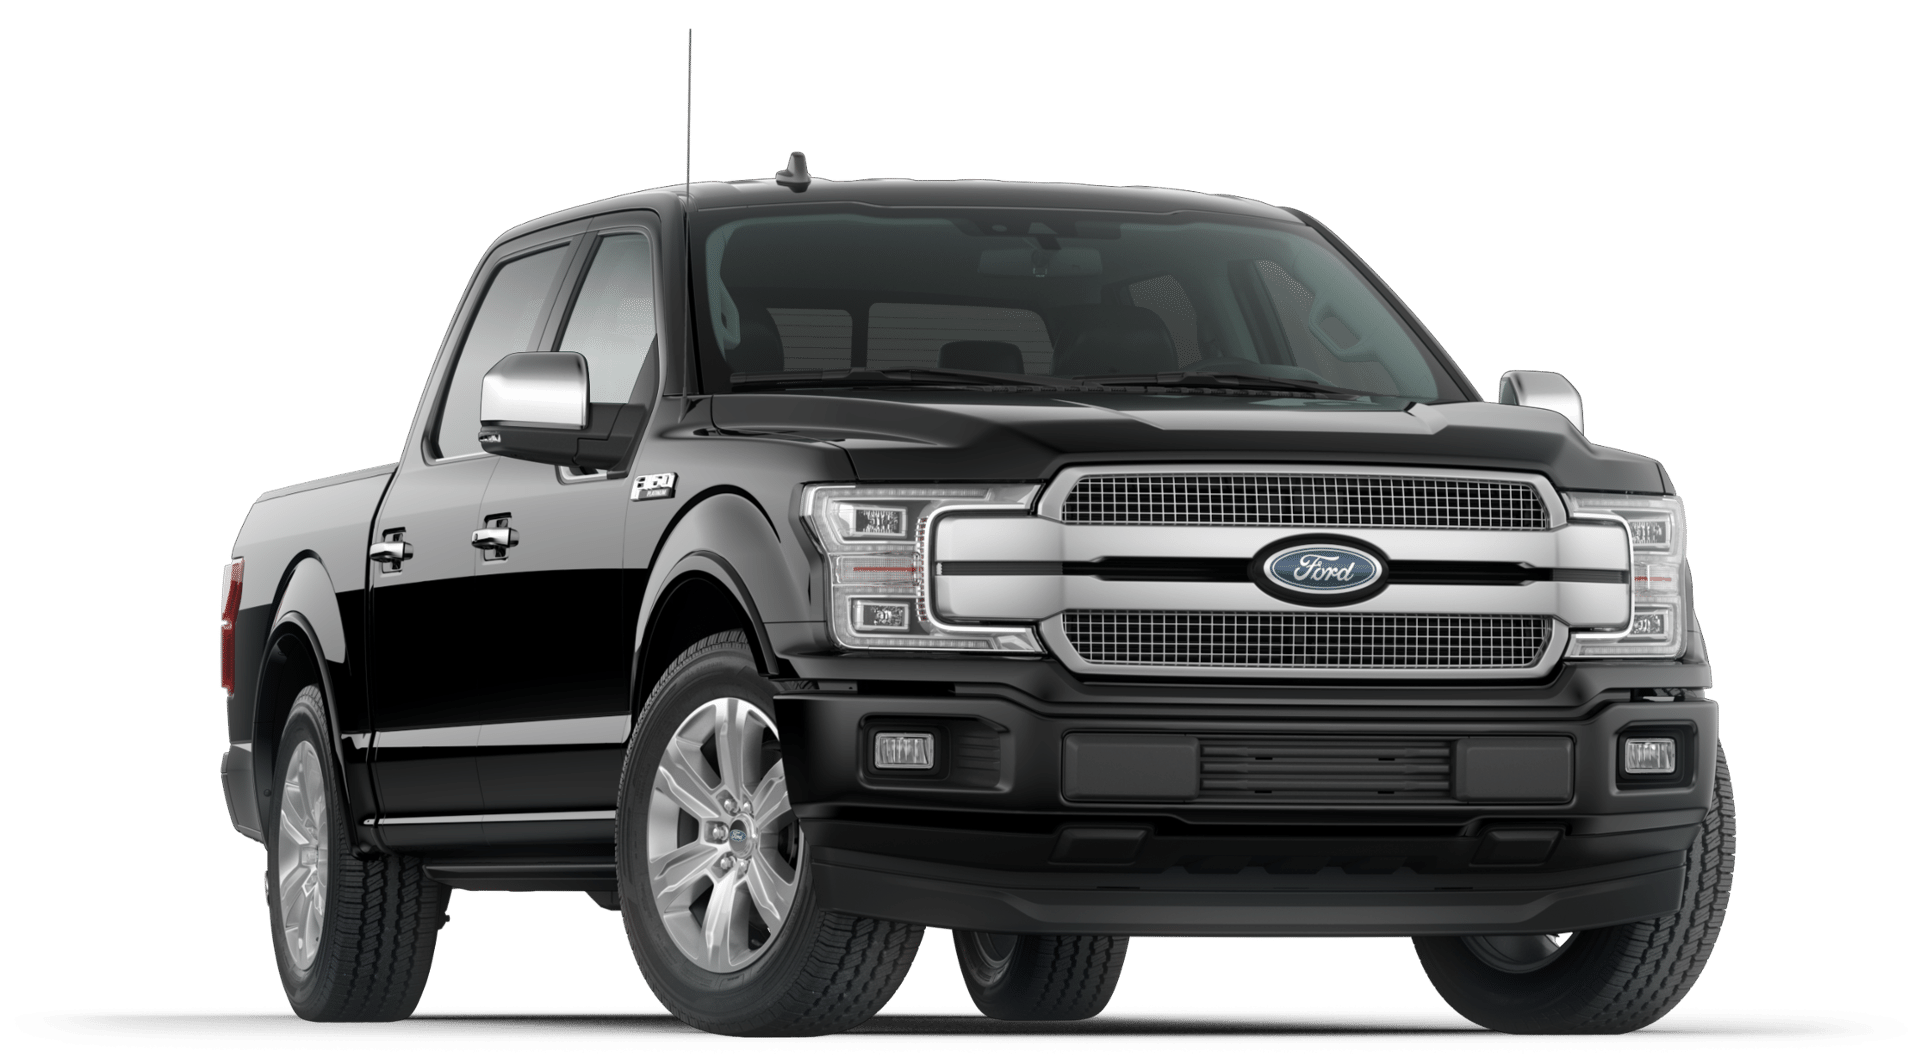 2018 ford f 150 platinum bill talley ford mechanicsville va. Black Bedroom Furniture Sets. Home Design Ideas